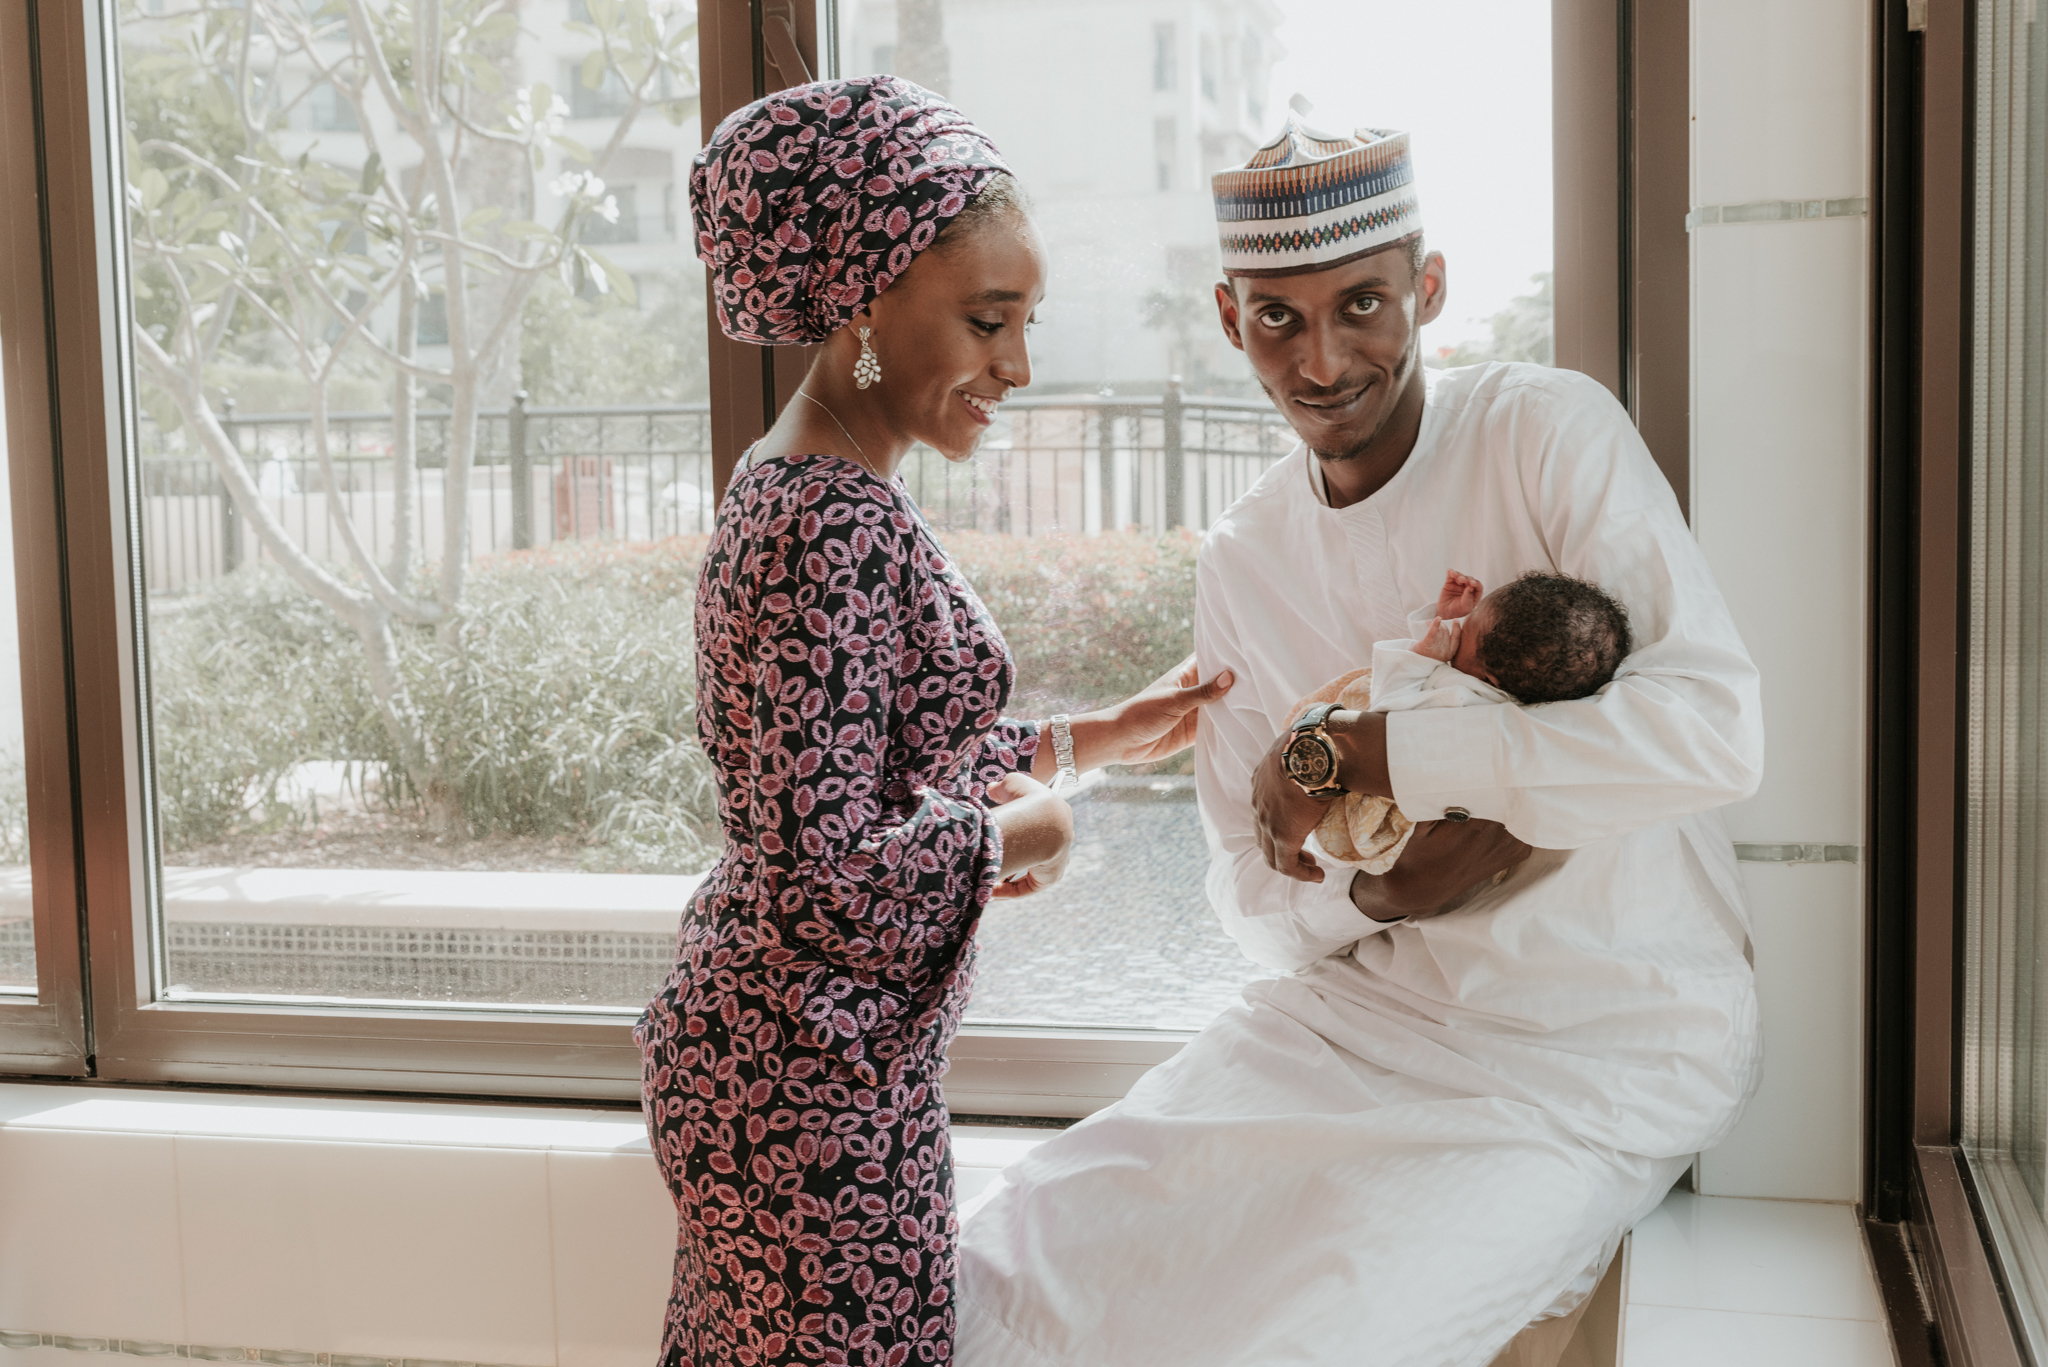 Lana Photographs Newborn Baby Photographer Newborn Photographer Dubai Professional Newborn Photography portrait of a father holding his newborn child by the window